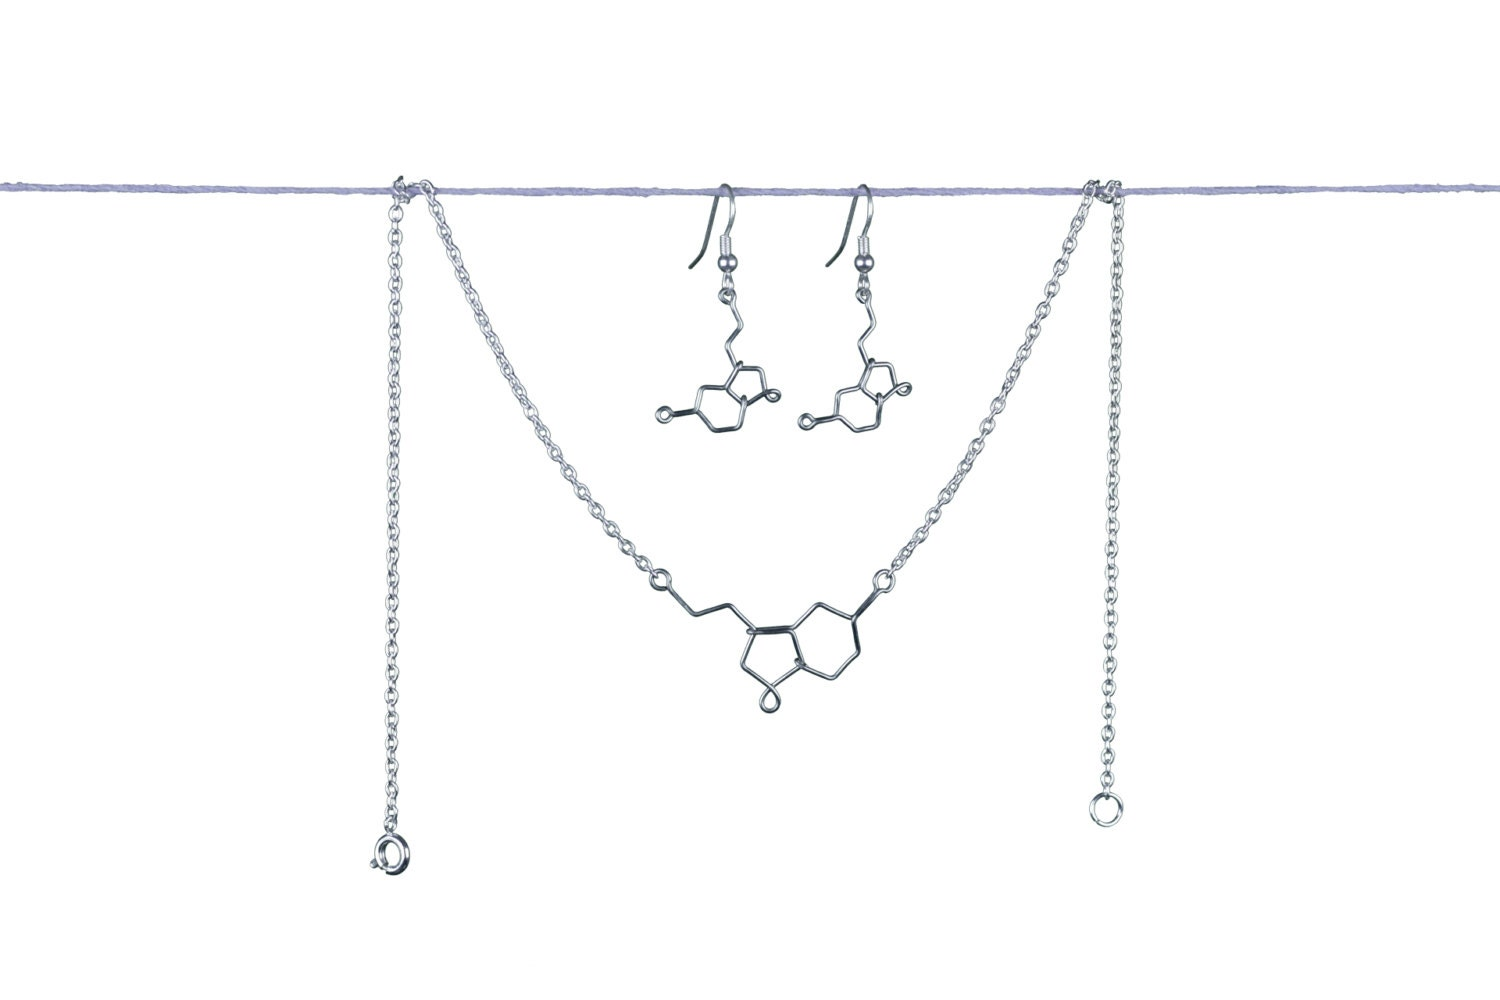 Serotonin Molecule Gift Set - Matching Chemistry Jewelry - Bracelet or Necklace and Earrings